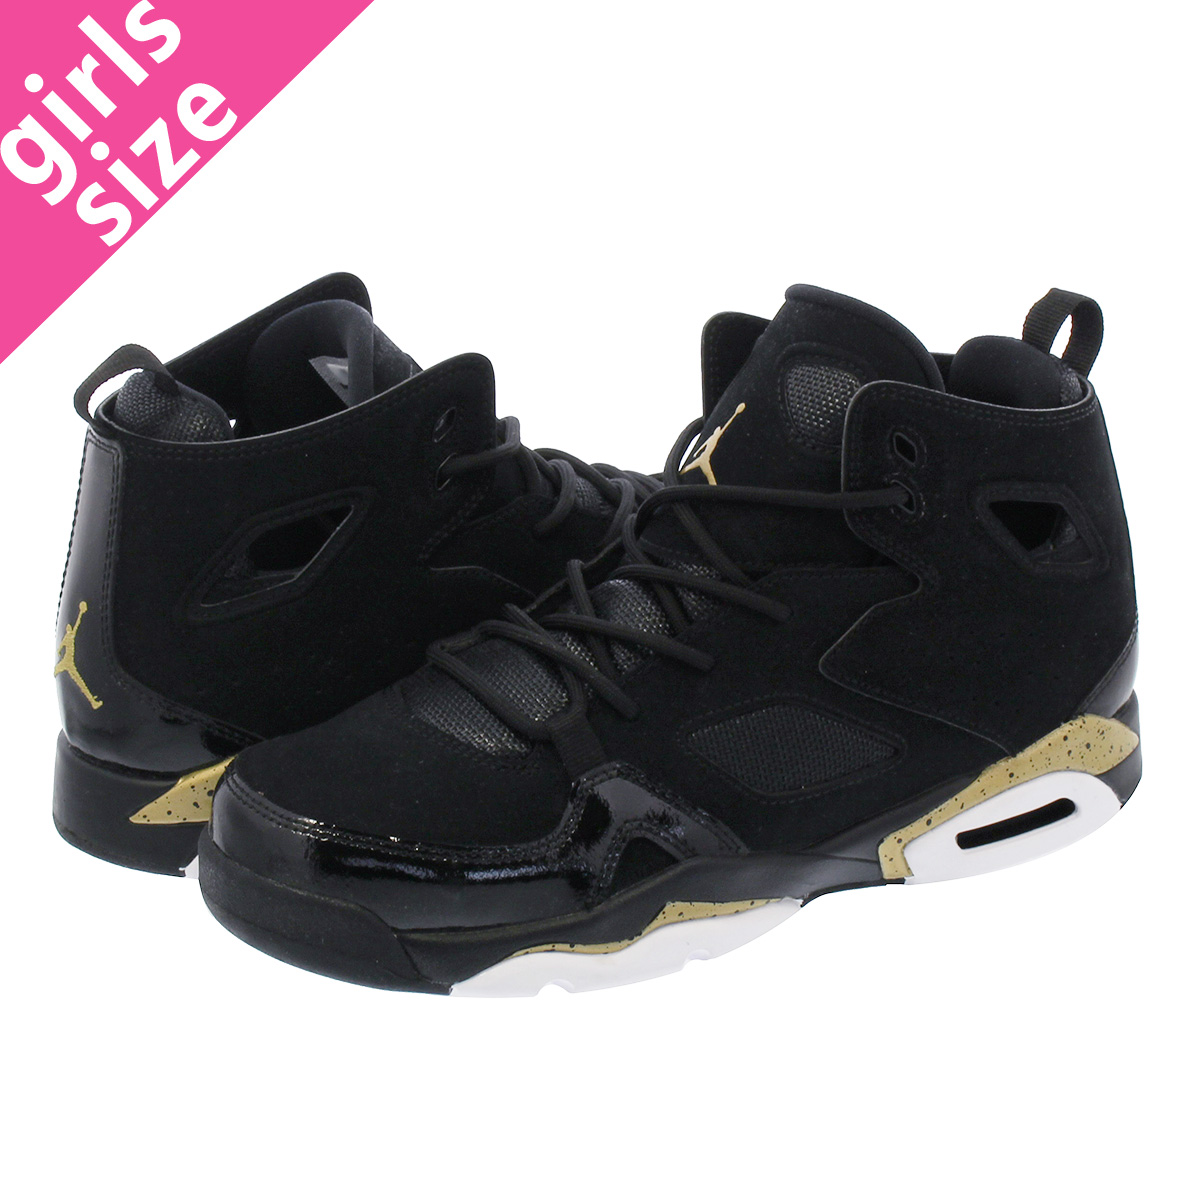 d414c1520ae5a9 LOWTEX BIG-SMALL SHOP  NIKE JORDAN FLIGHT CLUB 91 GS Nike Jordan flight  club 91 GS BLACK GOLD WHITE 555